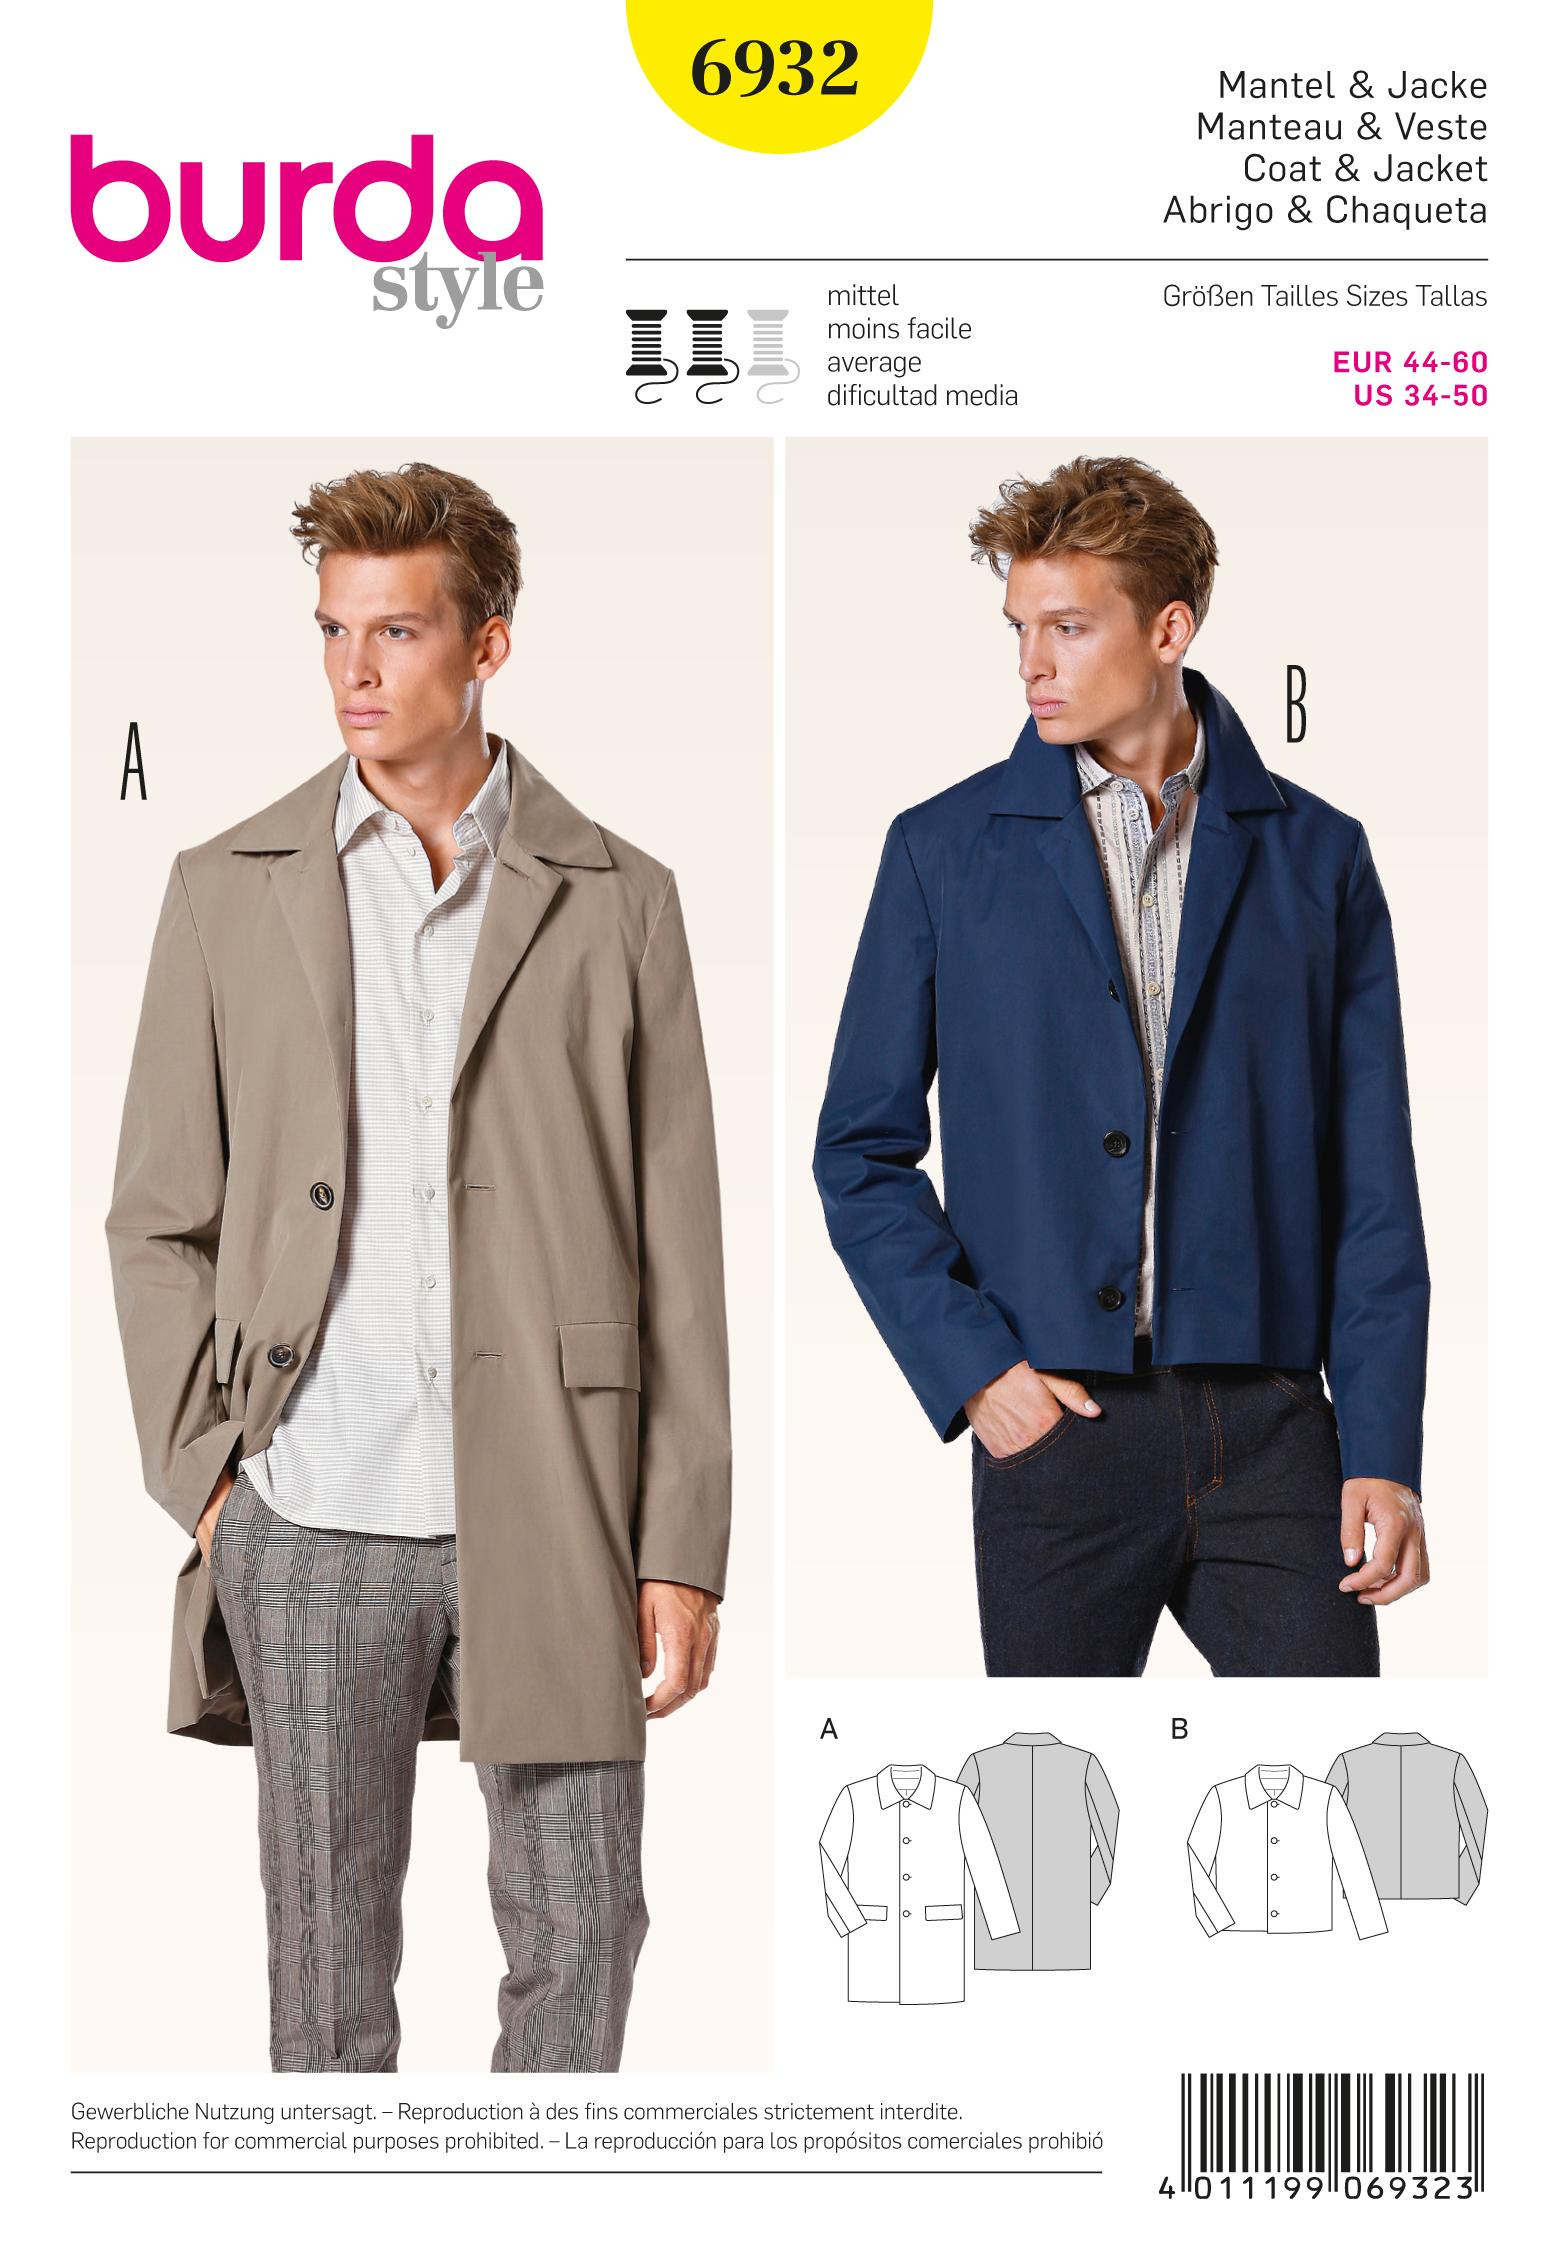 Burda B6932 Burda Menswear Sewing Pattern